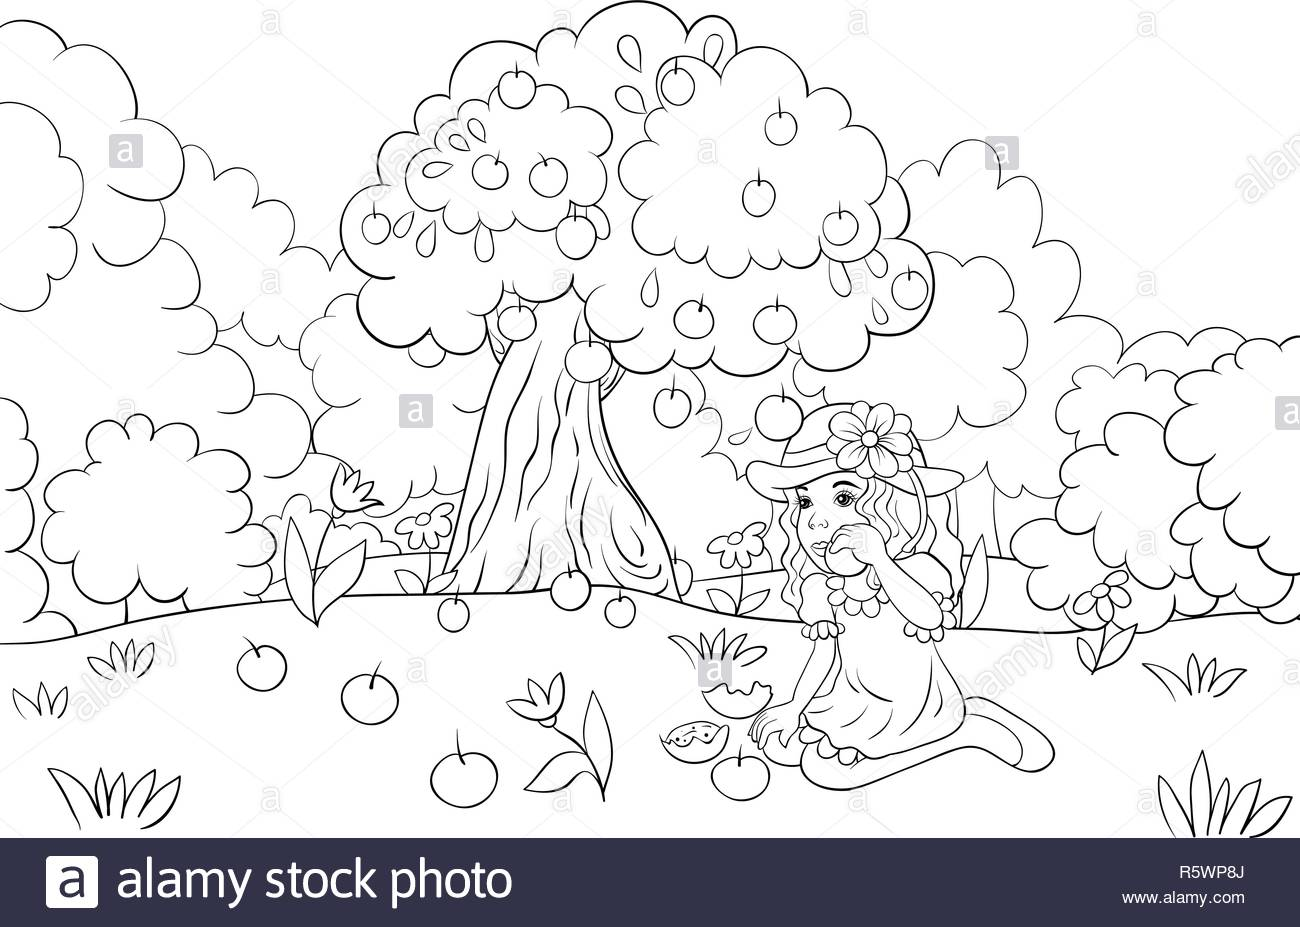 A Little Girl Eating Apples On The Background With Trees